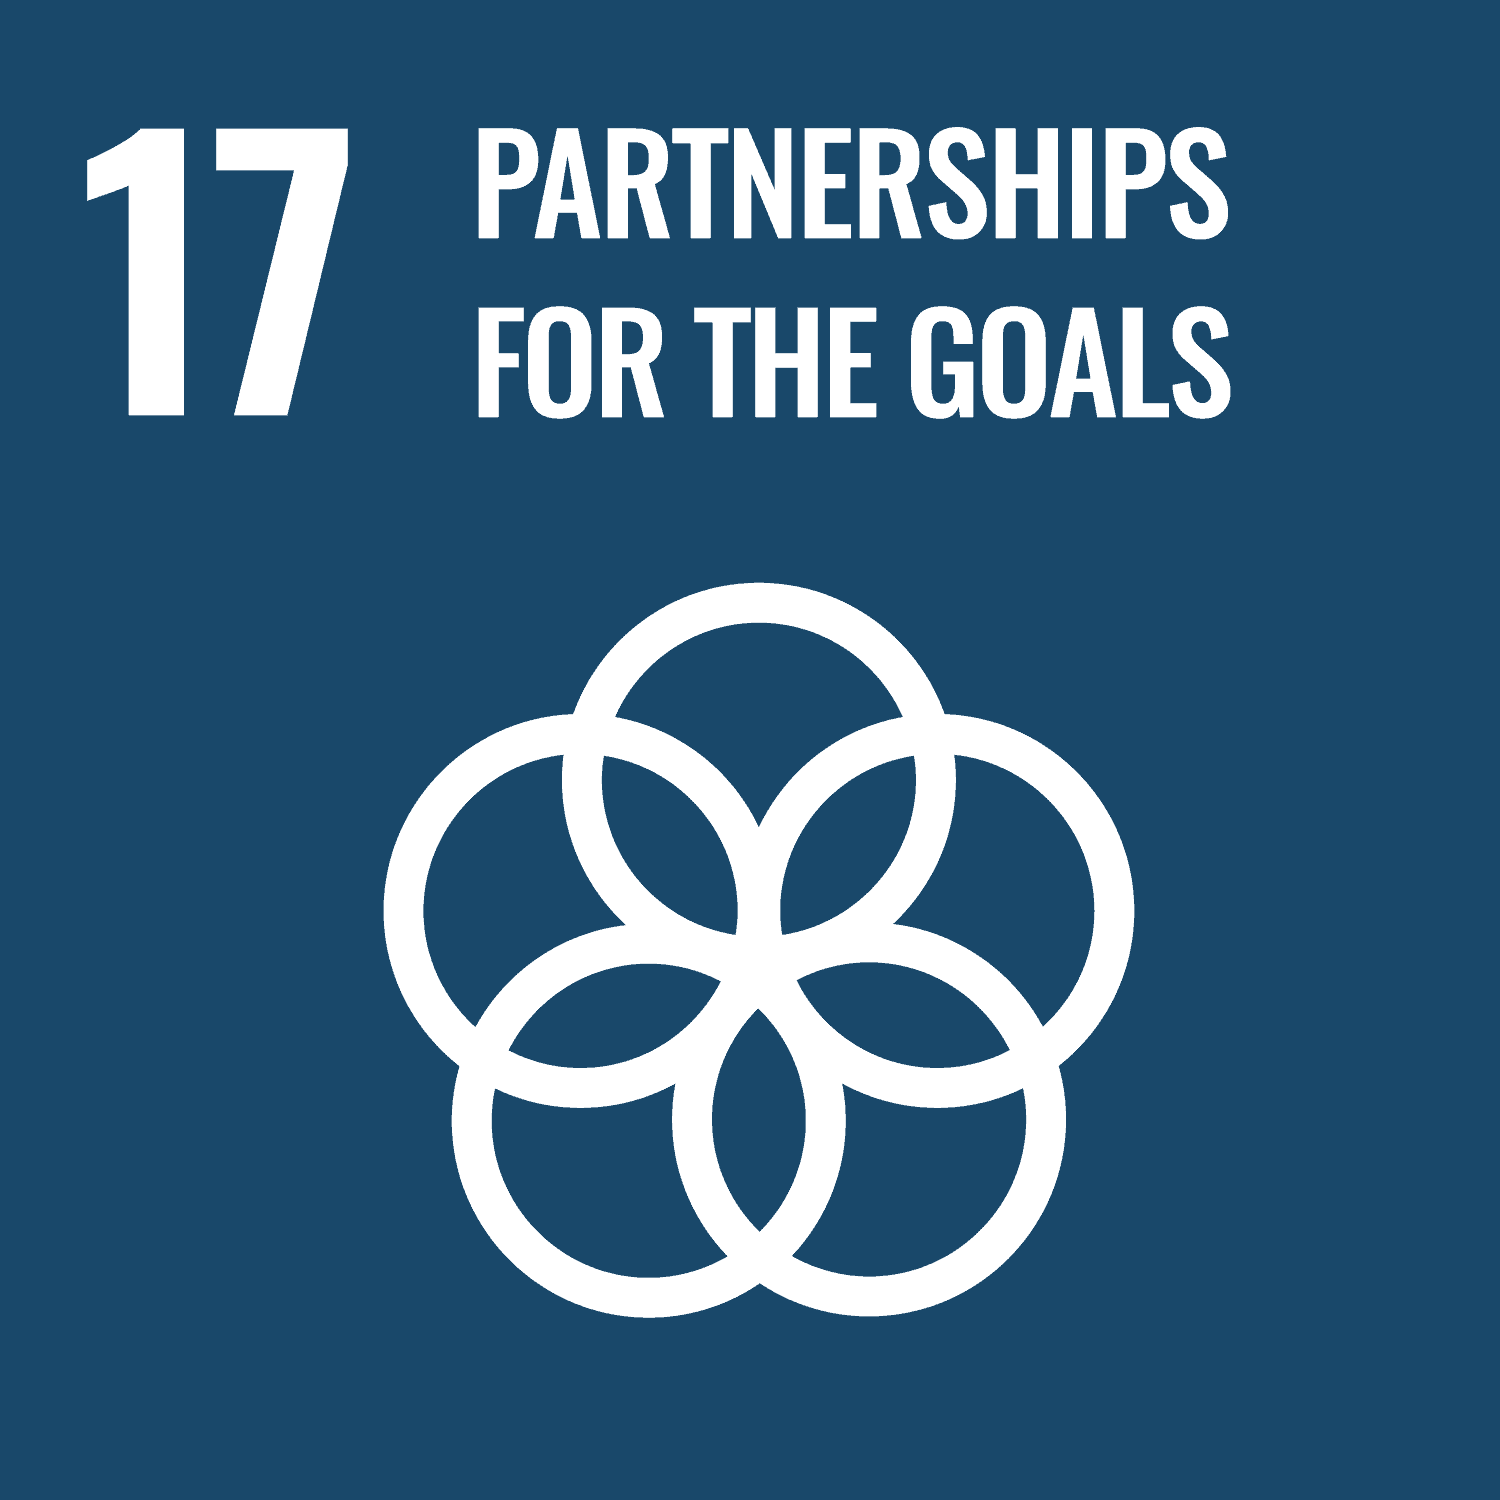 Partnerships to achieve the Goal